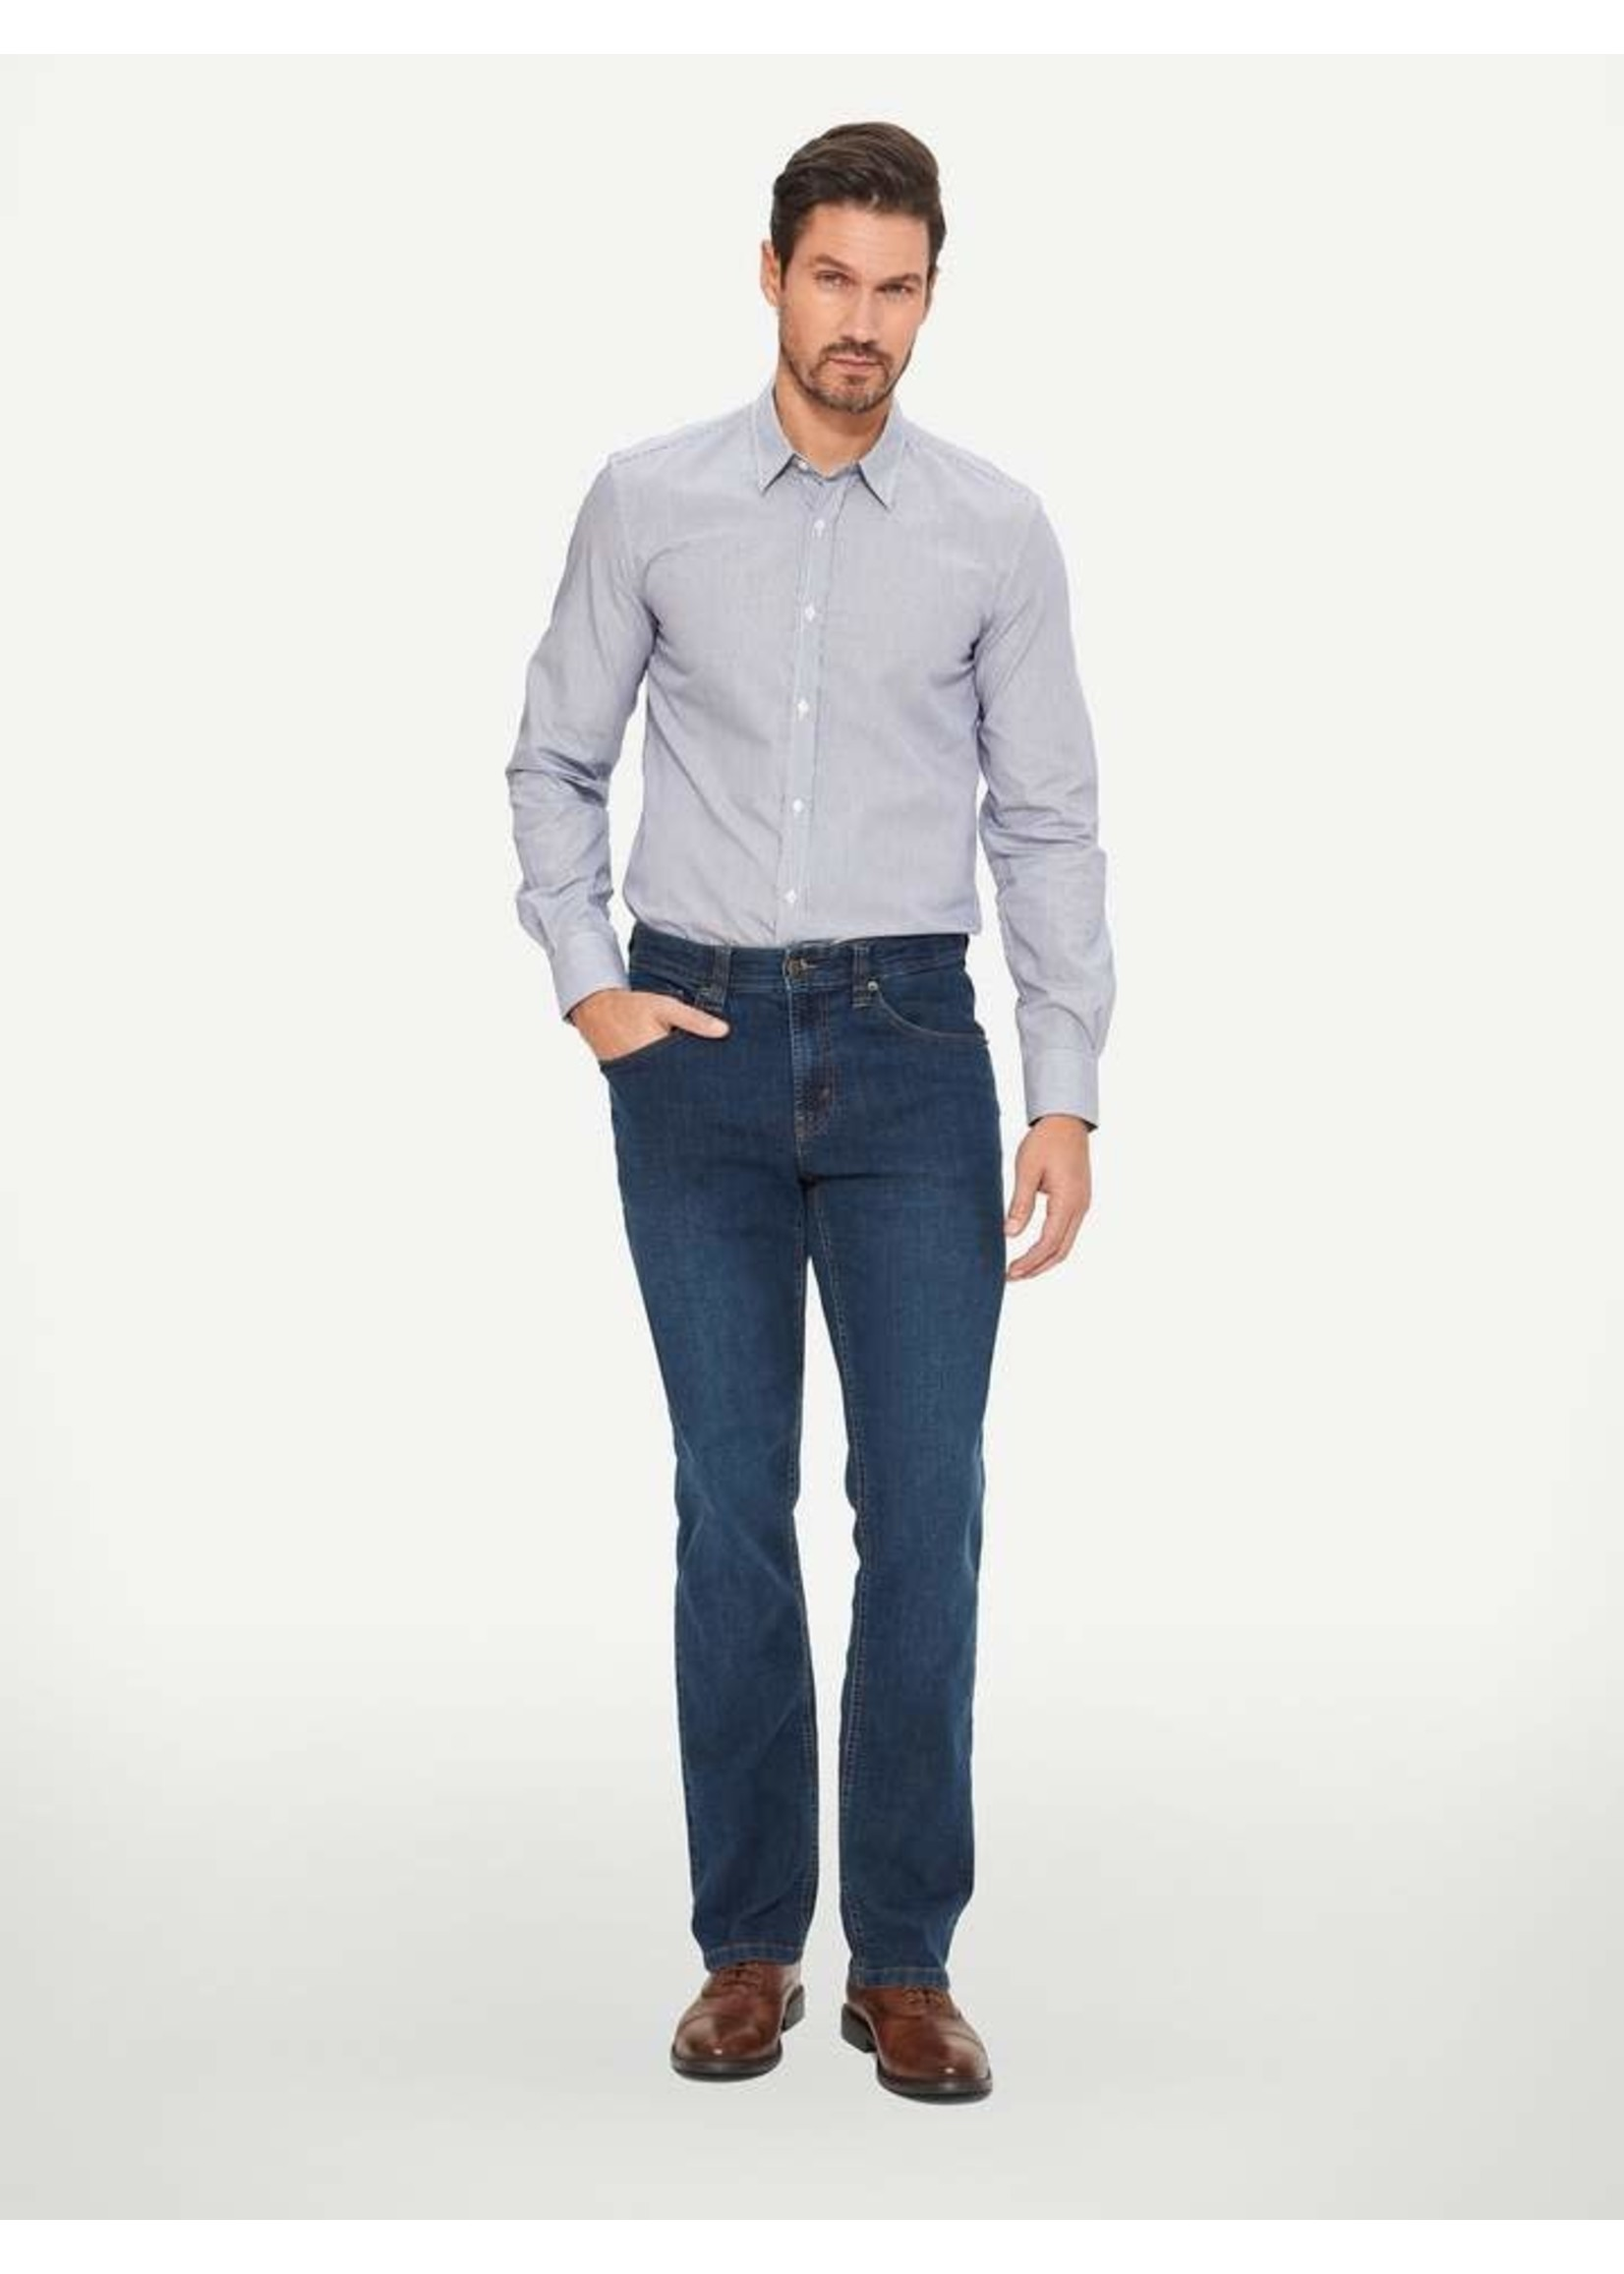 """Lois Jeans Canada The """"Brad Slim 6252"""" by Lois Jeans"""